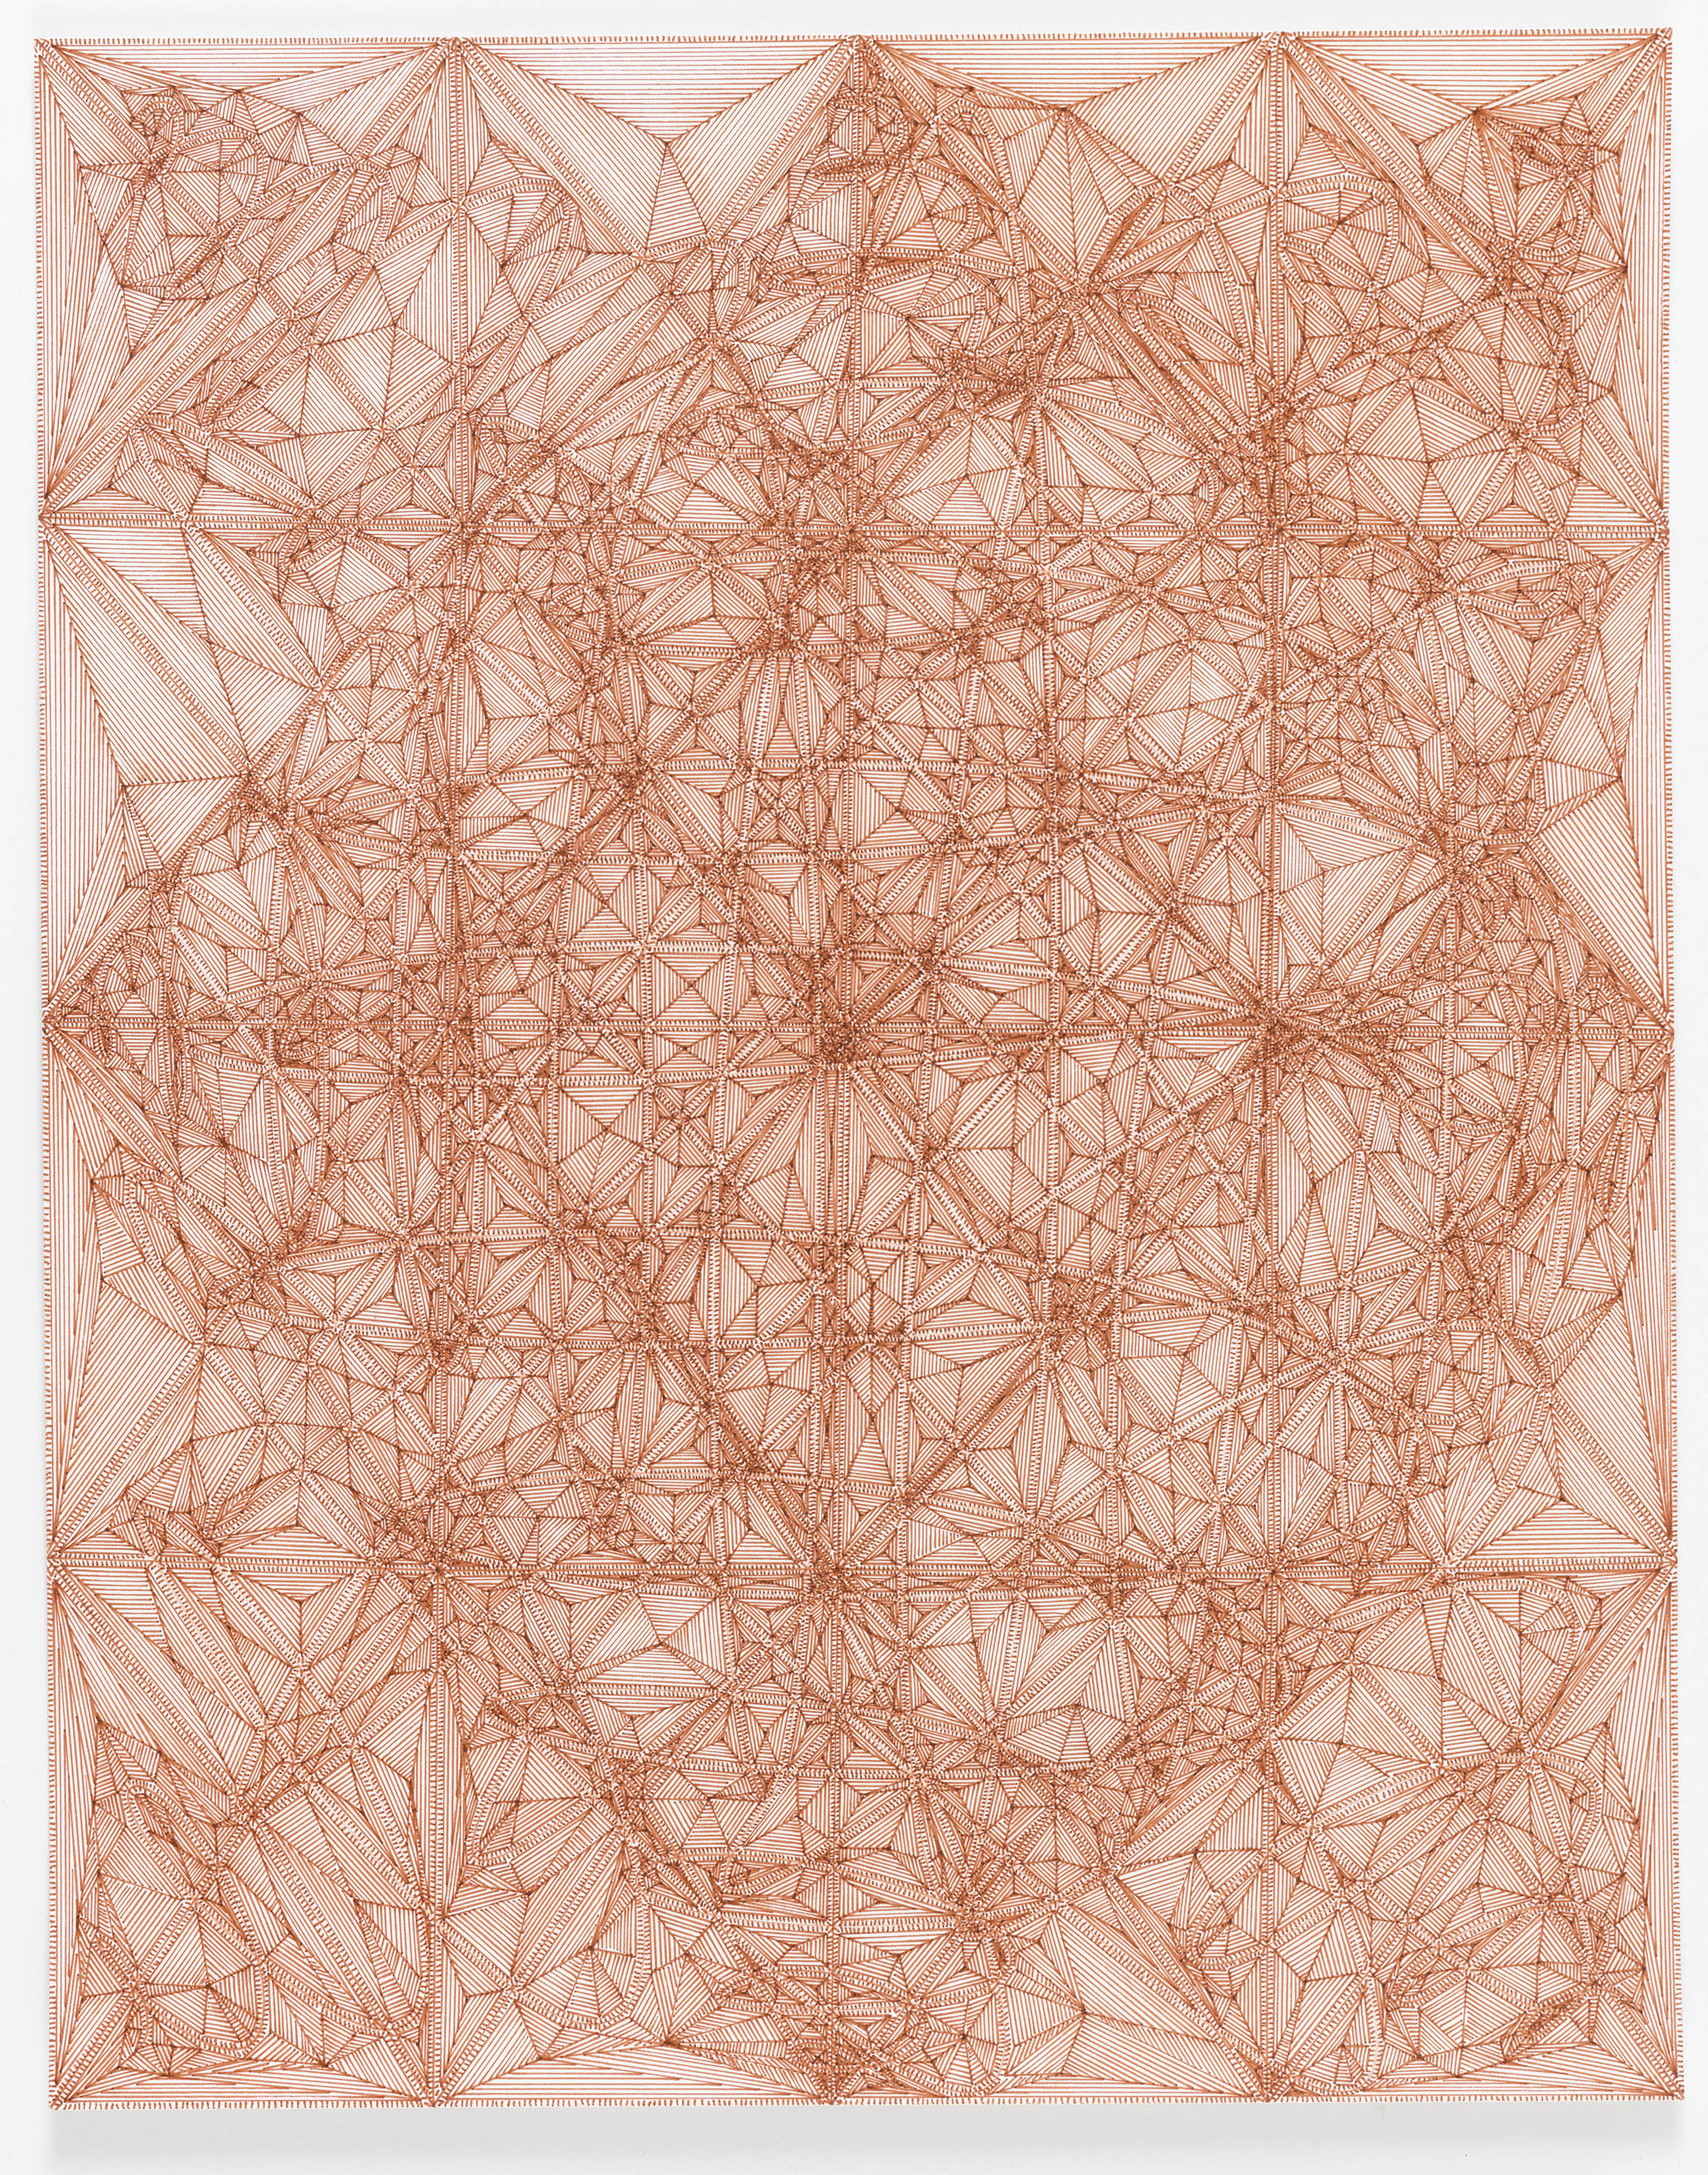 """Book 5 Volume 1 Page 37.2, 2017  in """"Richard Tinkler: Drawings"""" at 56 Henry."""